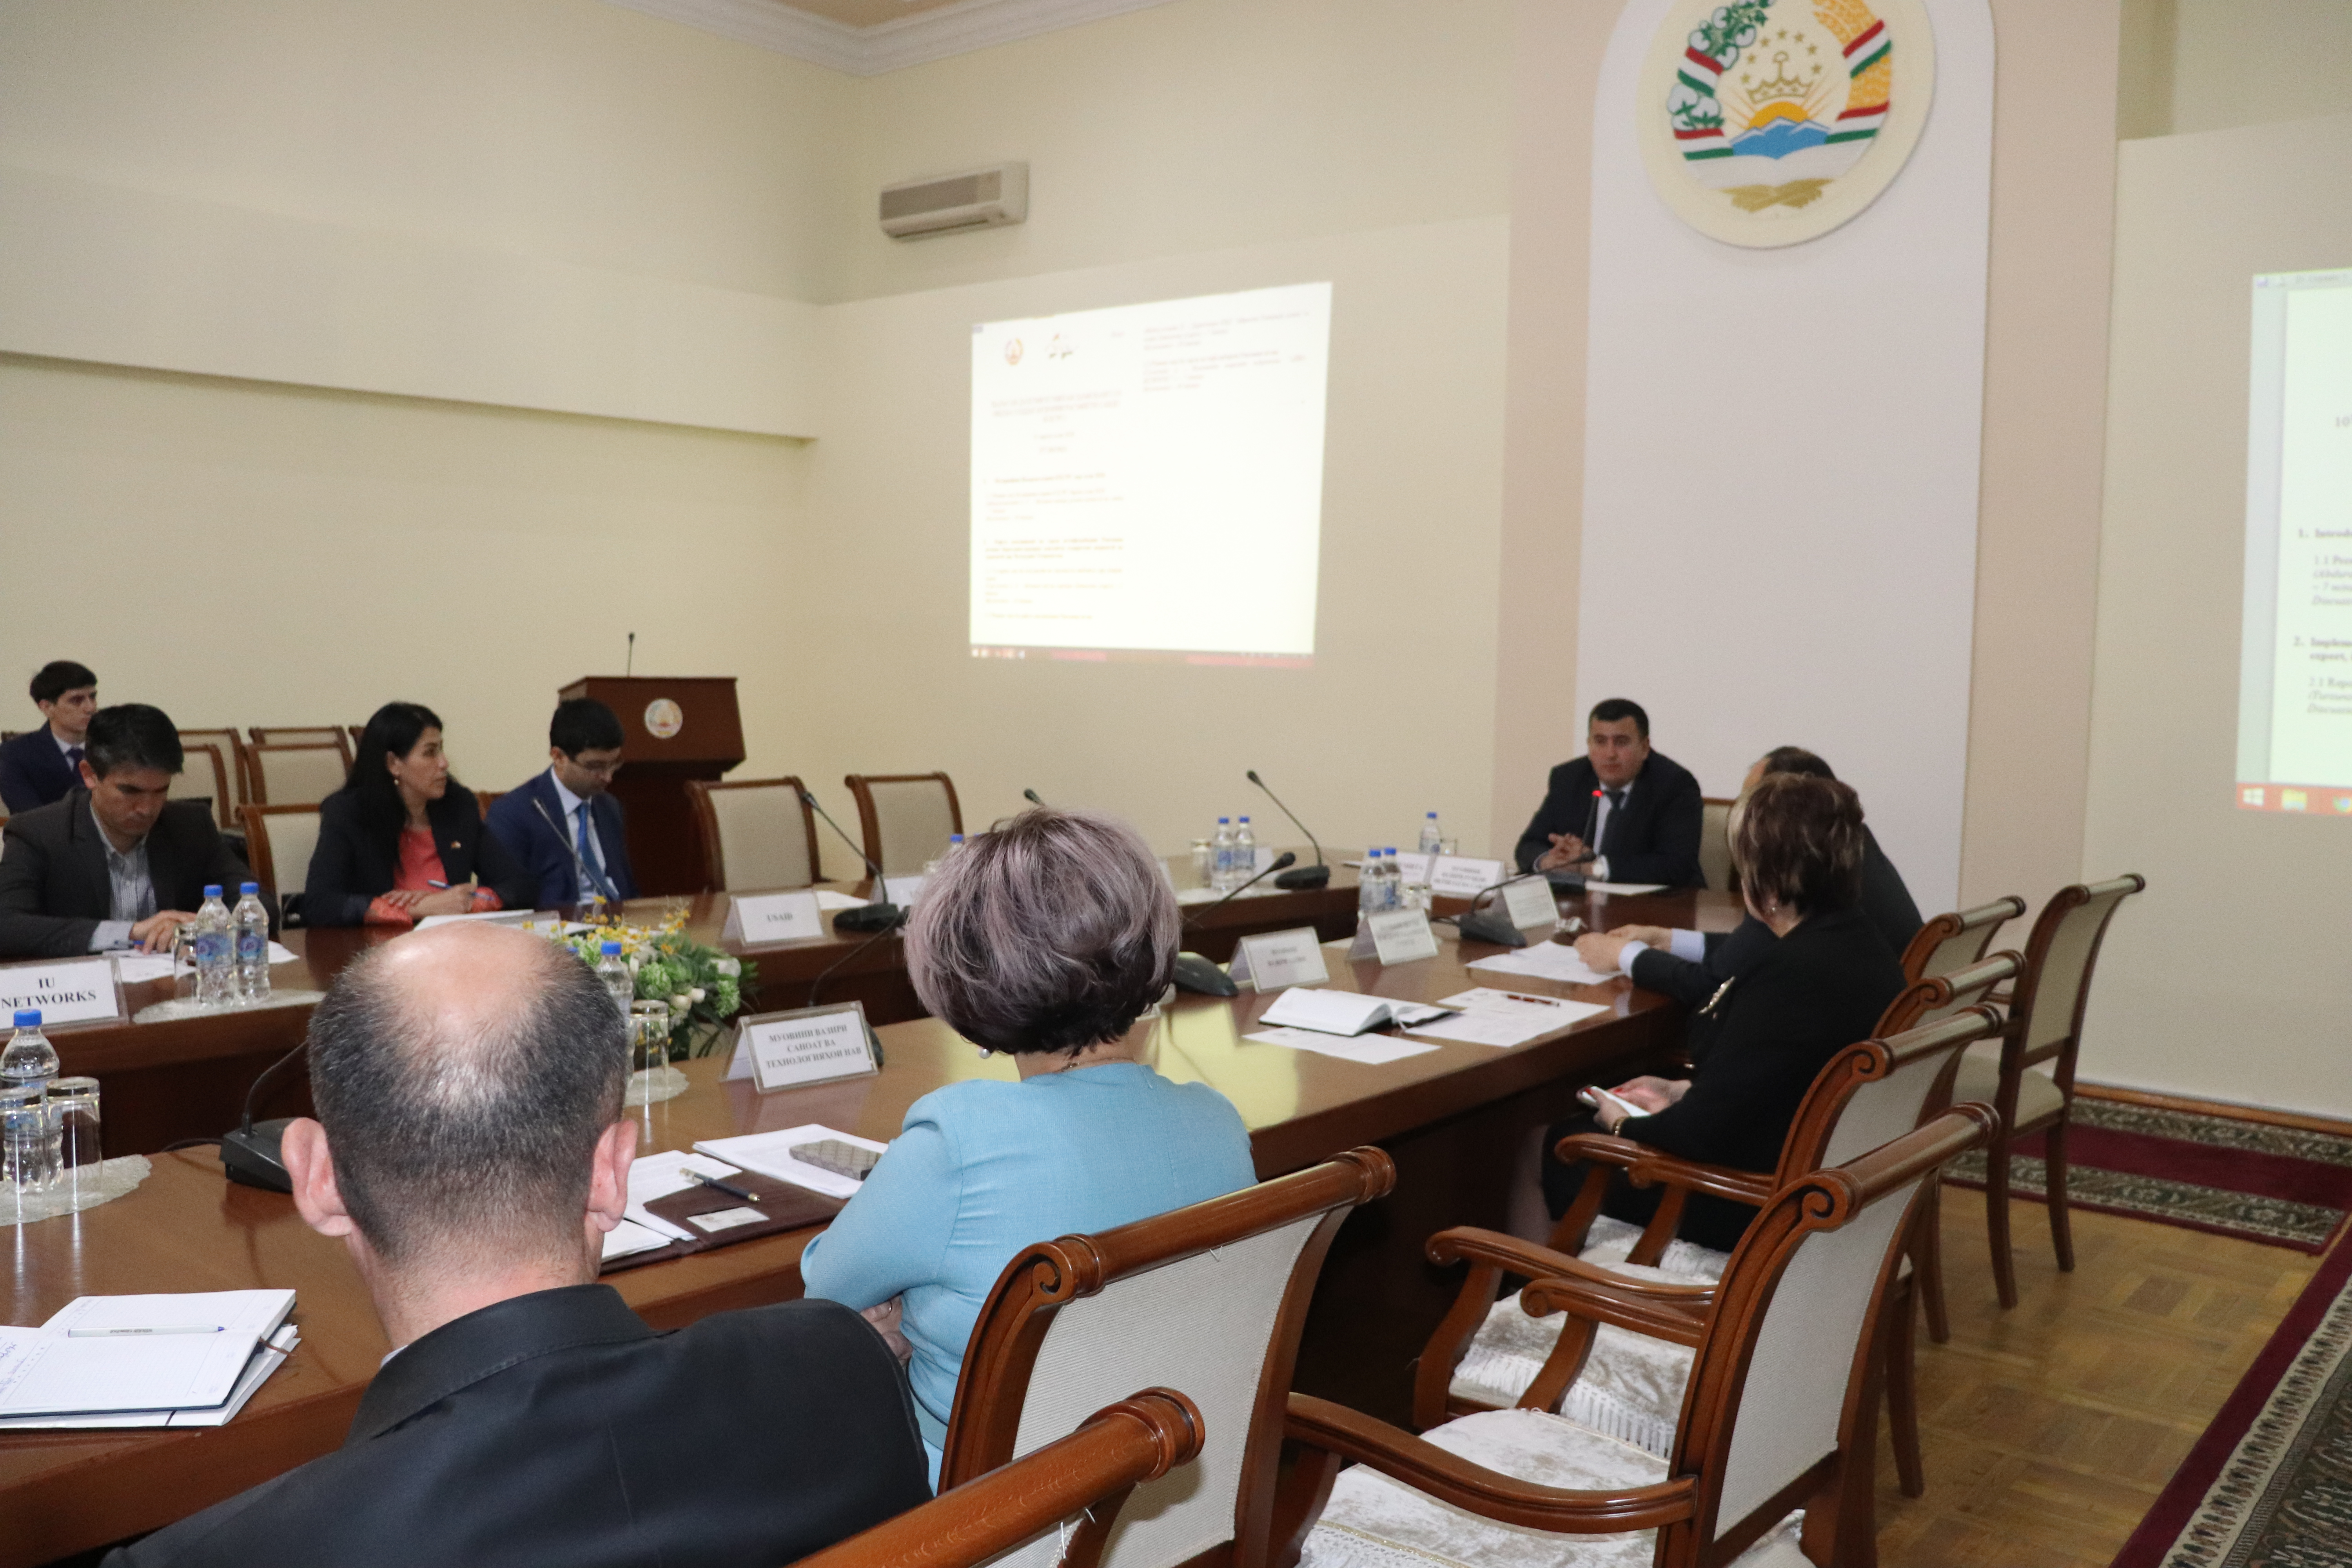 The 10th meeting of the Coordinating Committee on Facilitation of Trade Procedures